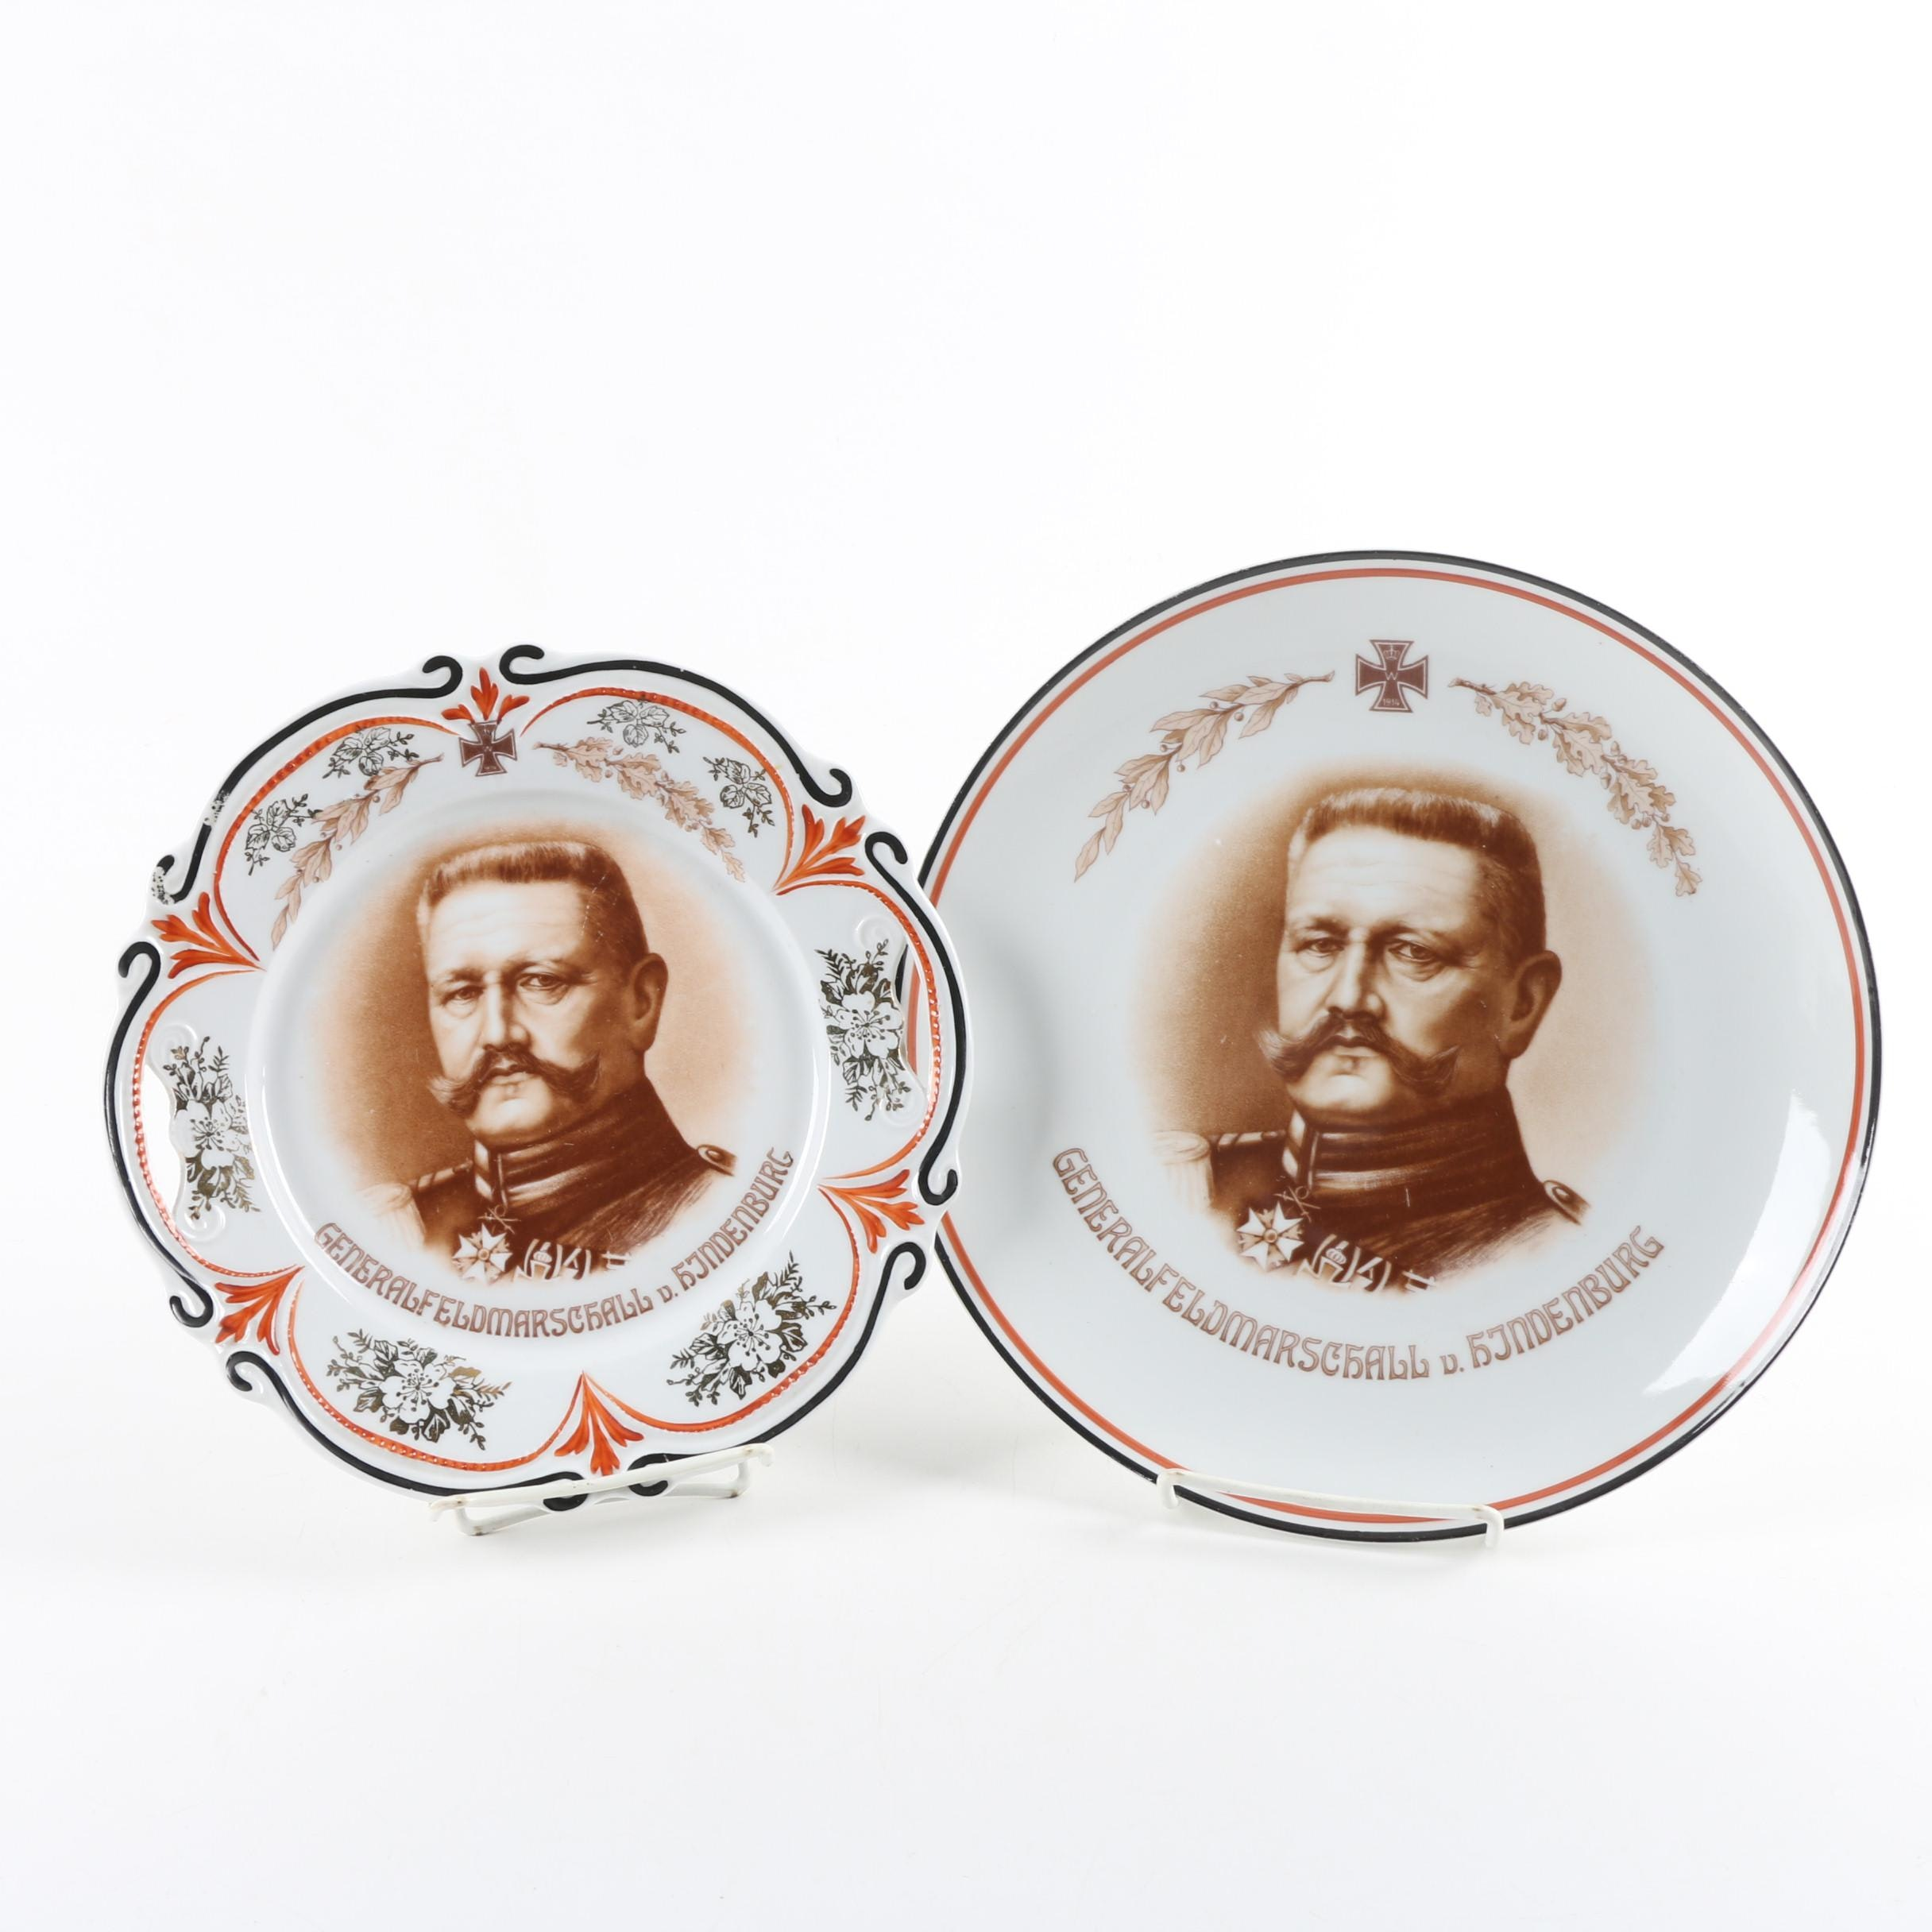 Porcelain German Cabinet Plates Featuring General Paul von Hindenburg